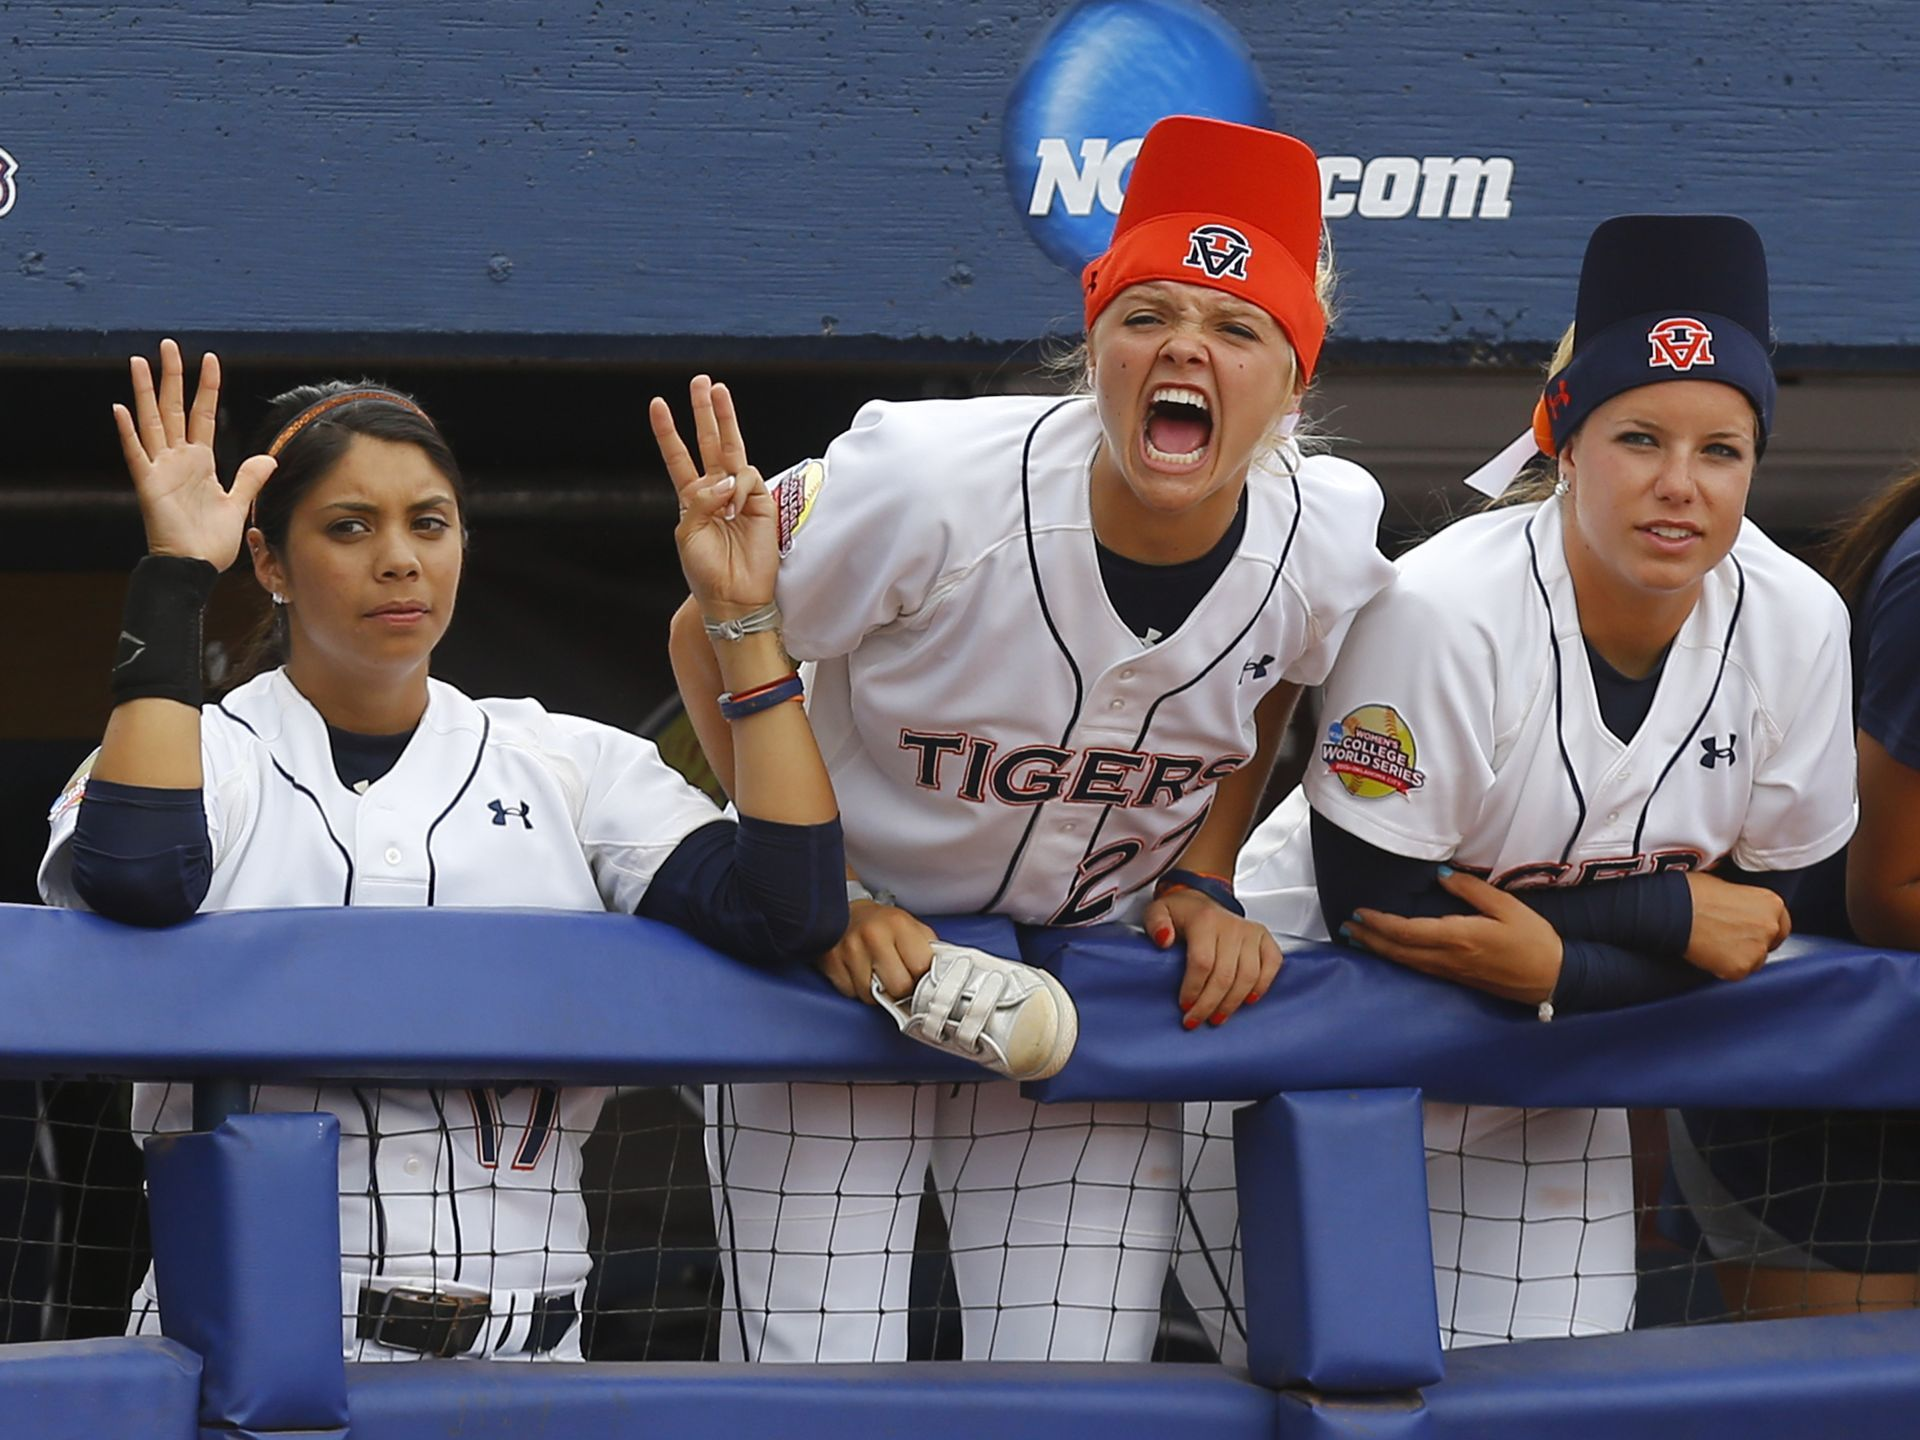 Auburn s victoria draper center shouts from the dugout in the seventh inning of a game against lsu in the ncaa women s college world series softball